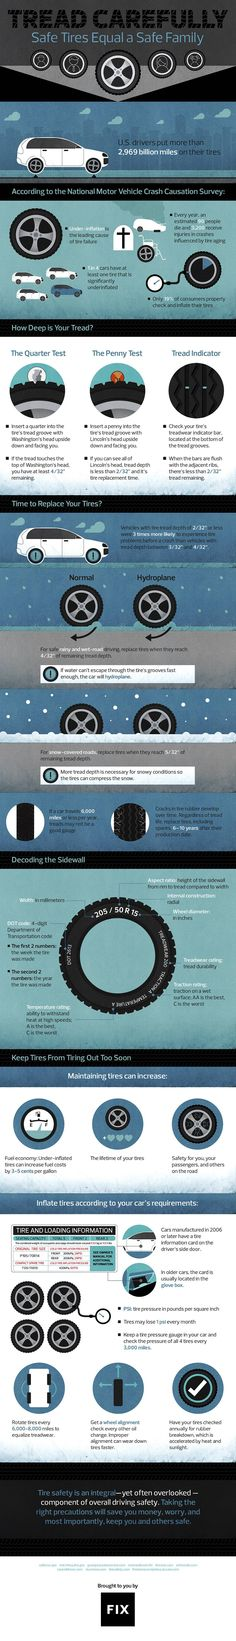 Tread Carefully Safe Tires Equal a Safe Family #infographic #Cars #Tires #safety